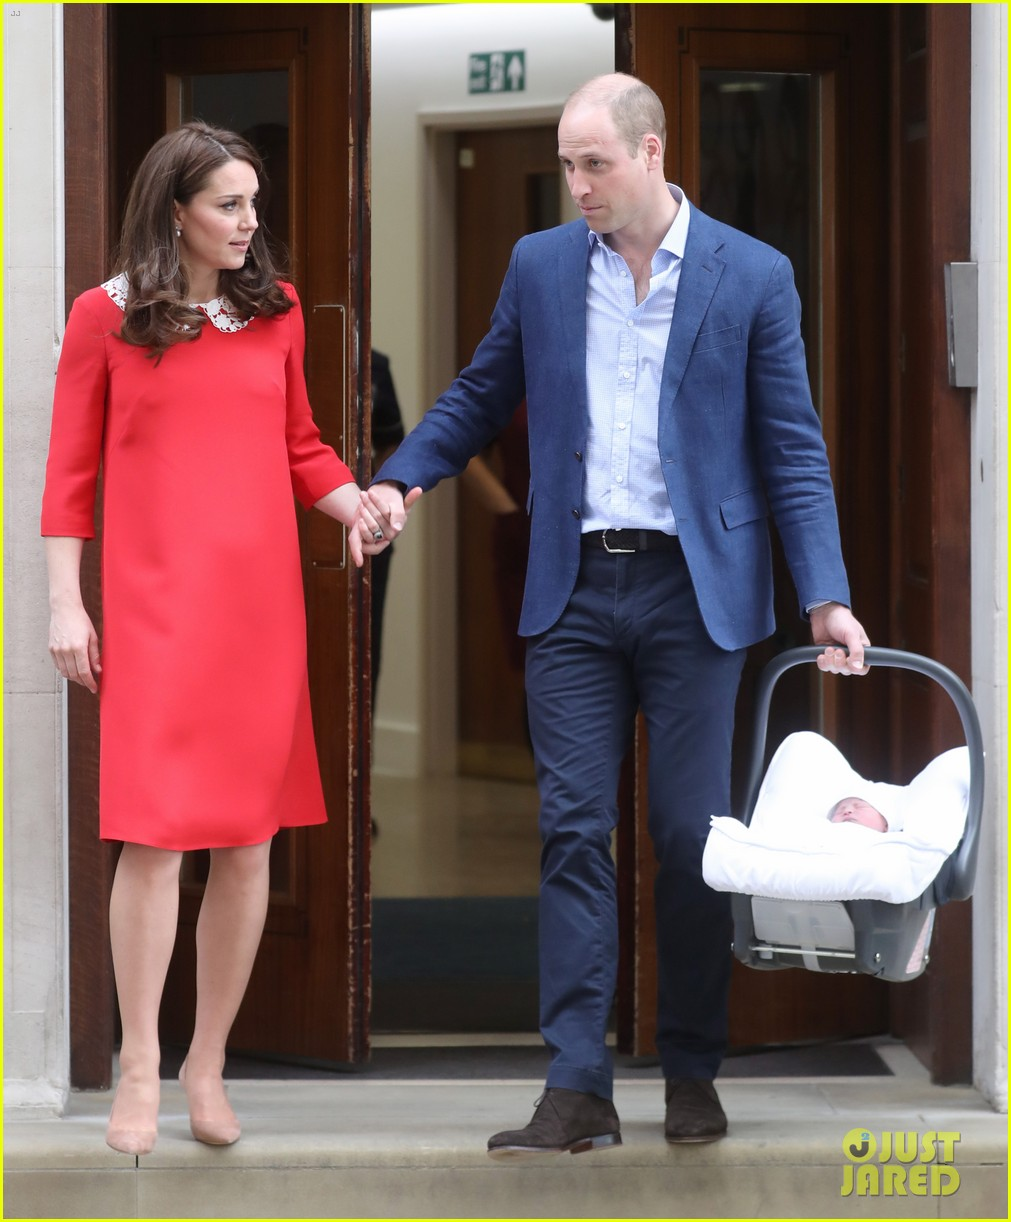 Prince William Cracked A Joke With Reporters After